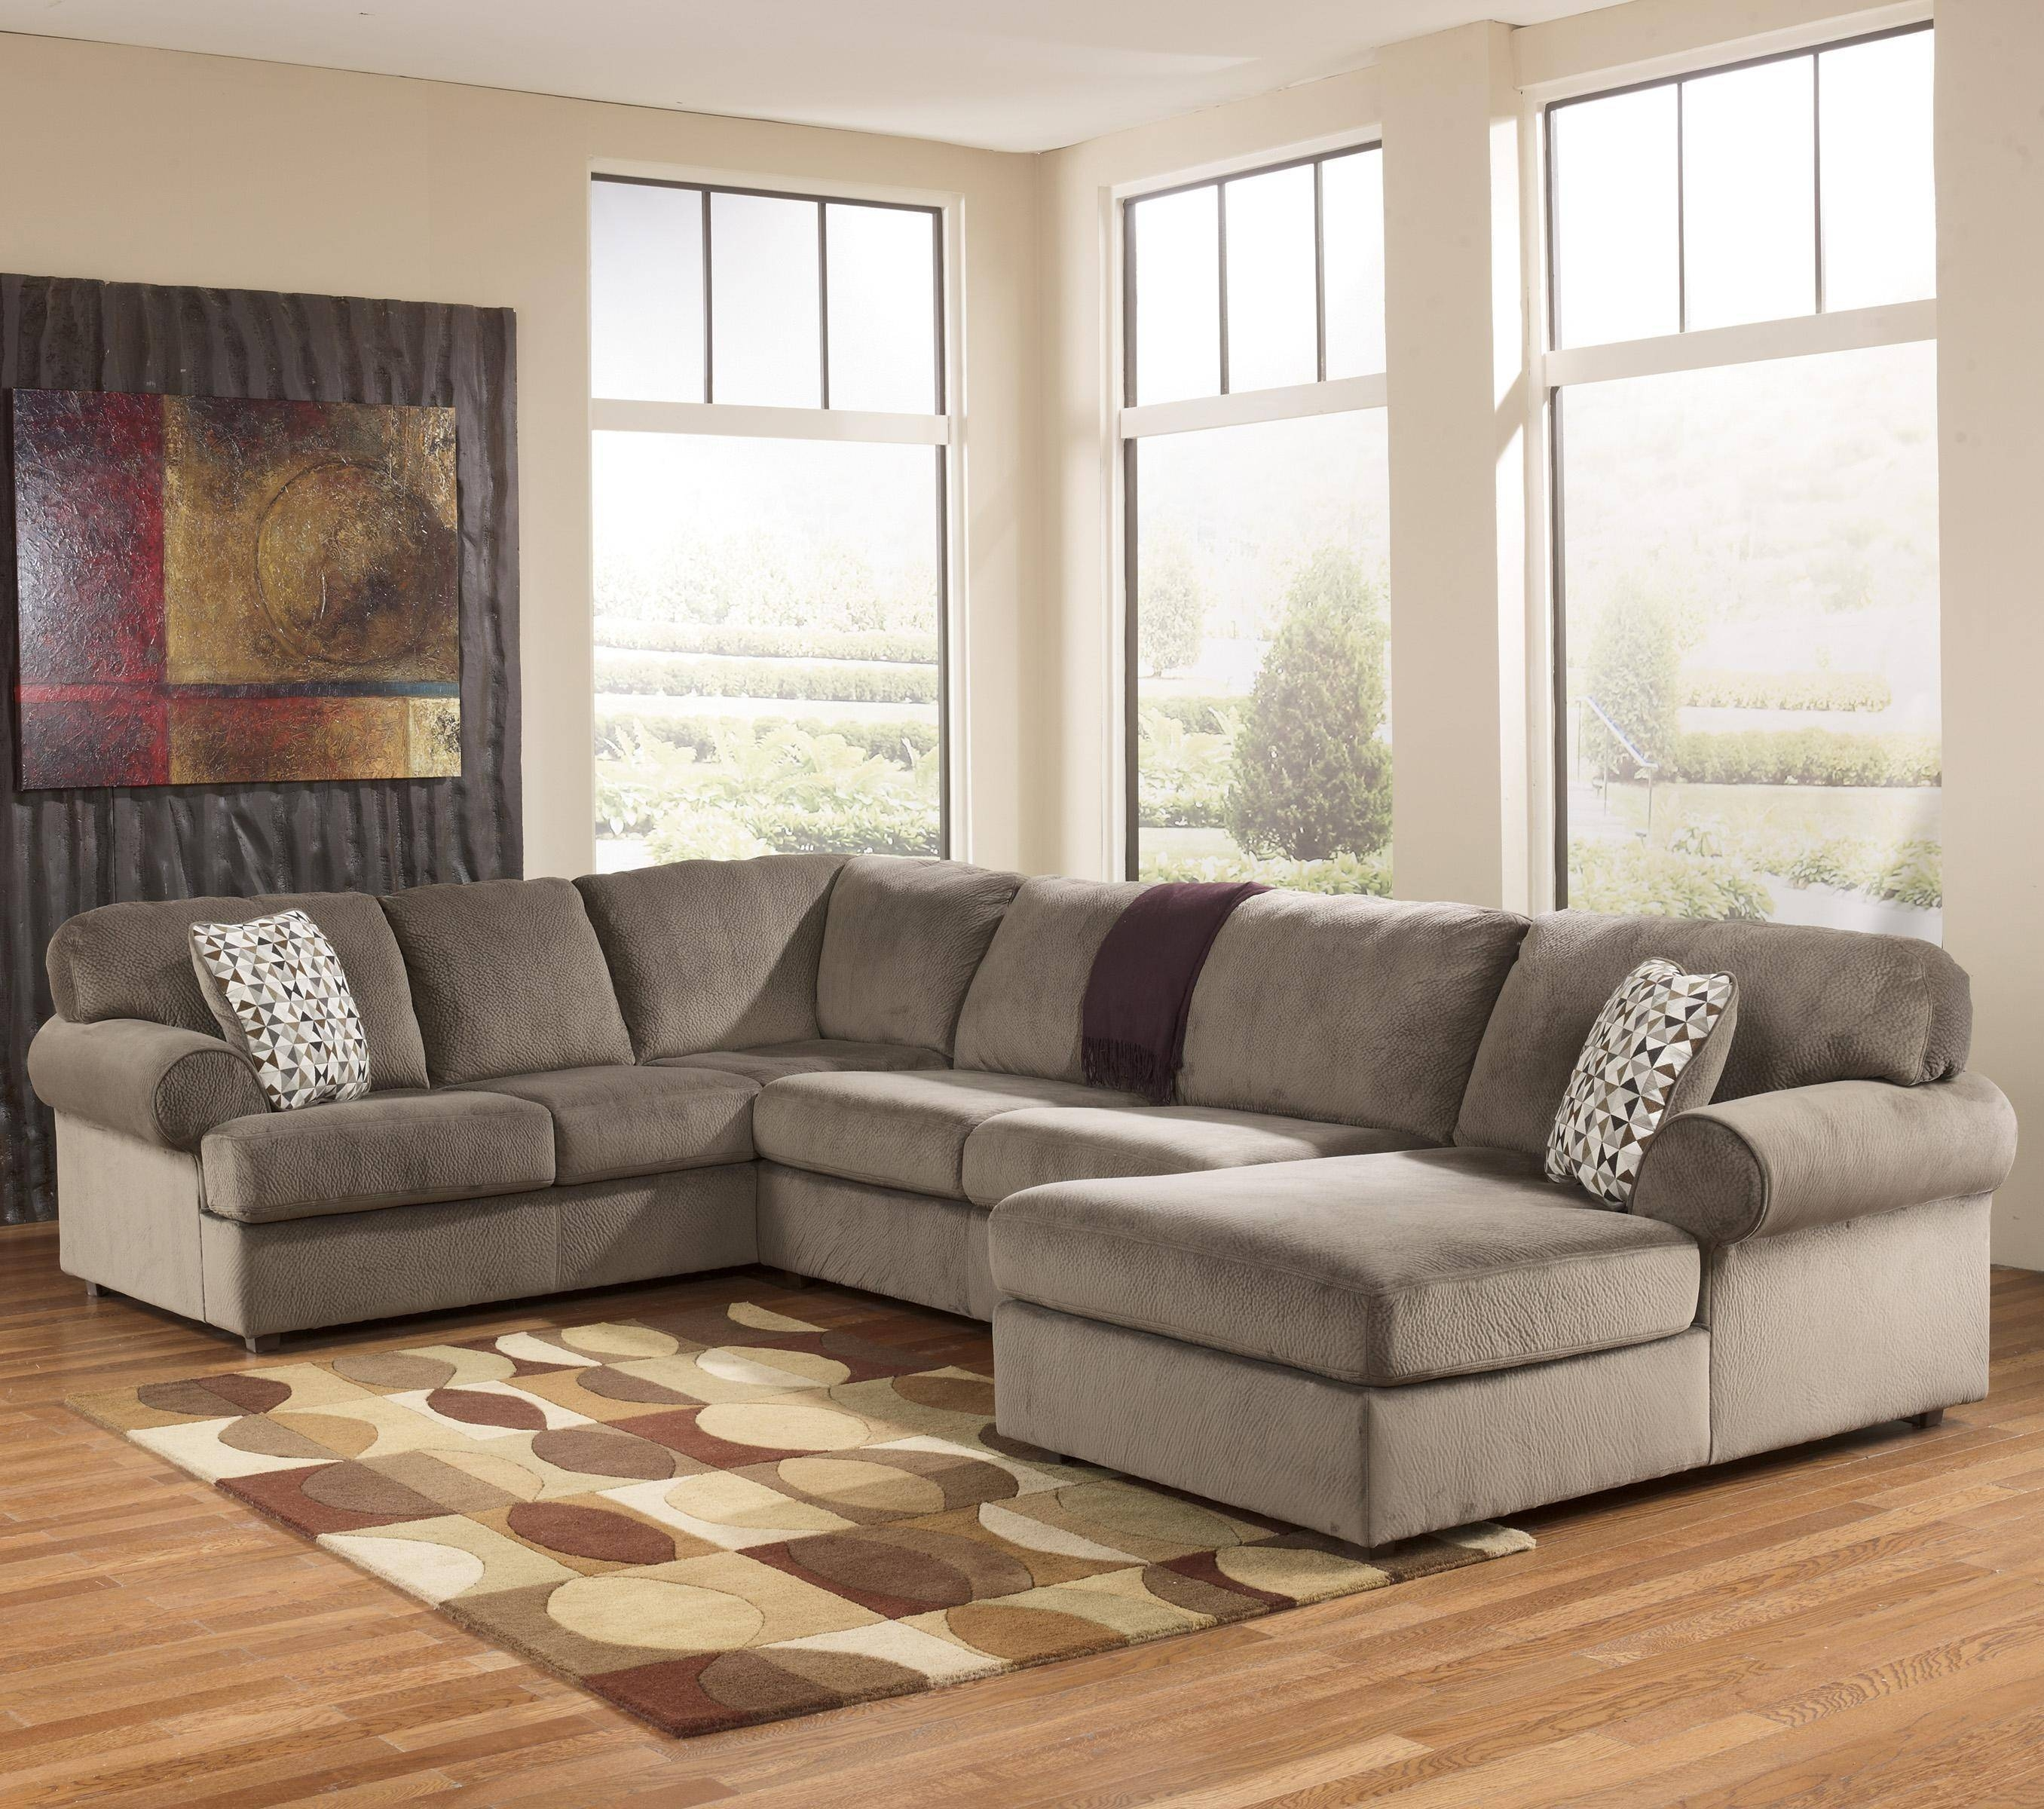 20 Best Ashley Furniture Corduroy Sectional Sofas | Sofa Ideas inside Ashley Corduroy Sectional Sofas (Image 1 of 15)